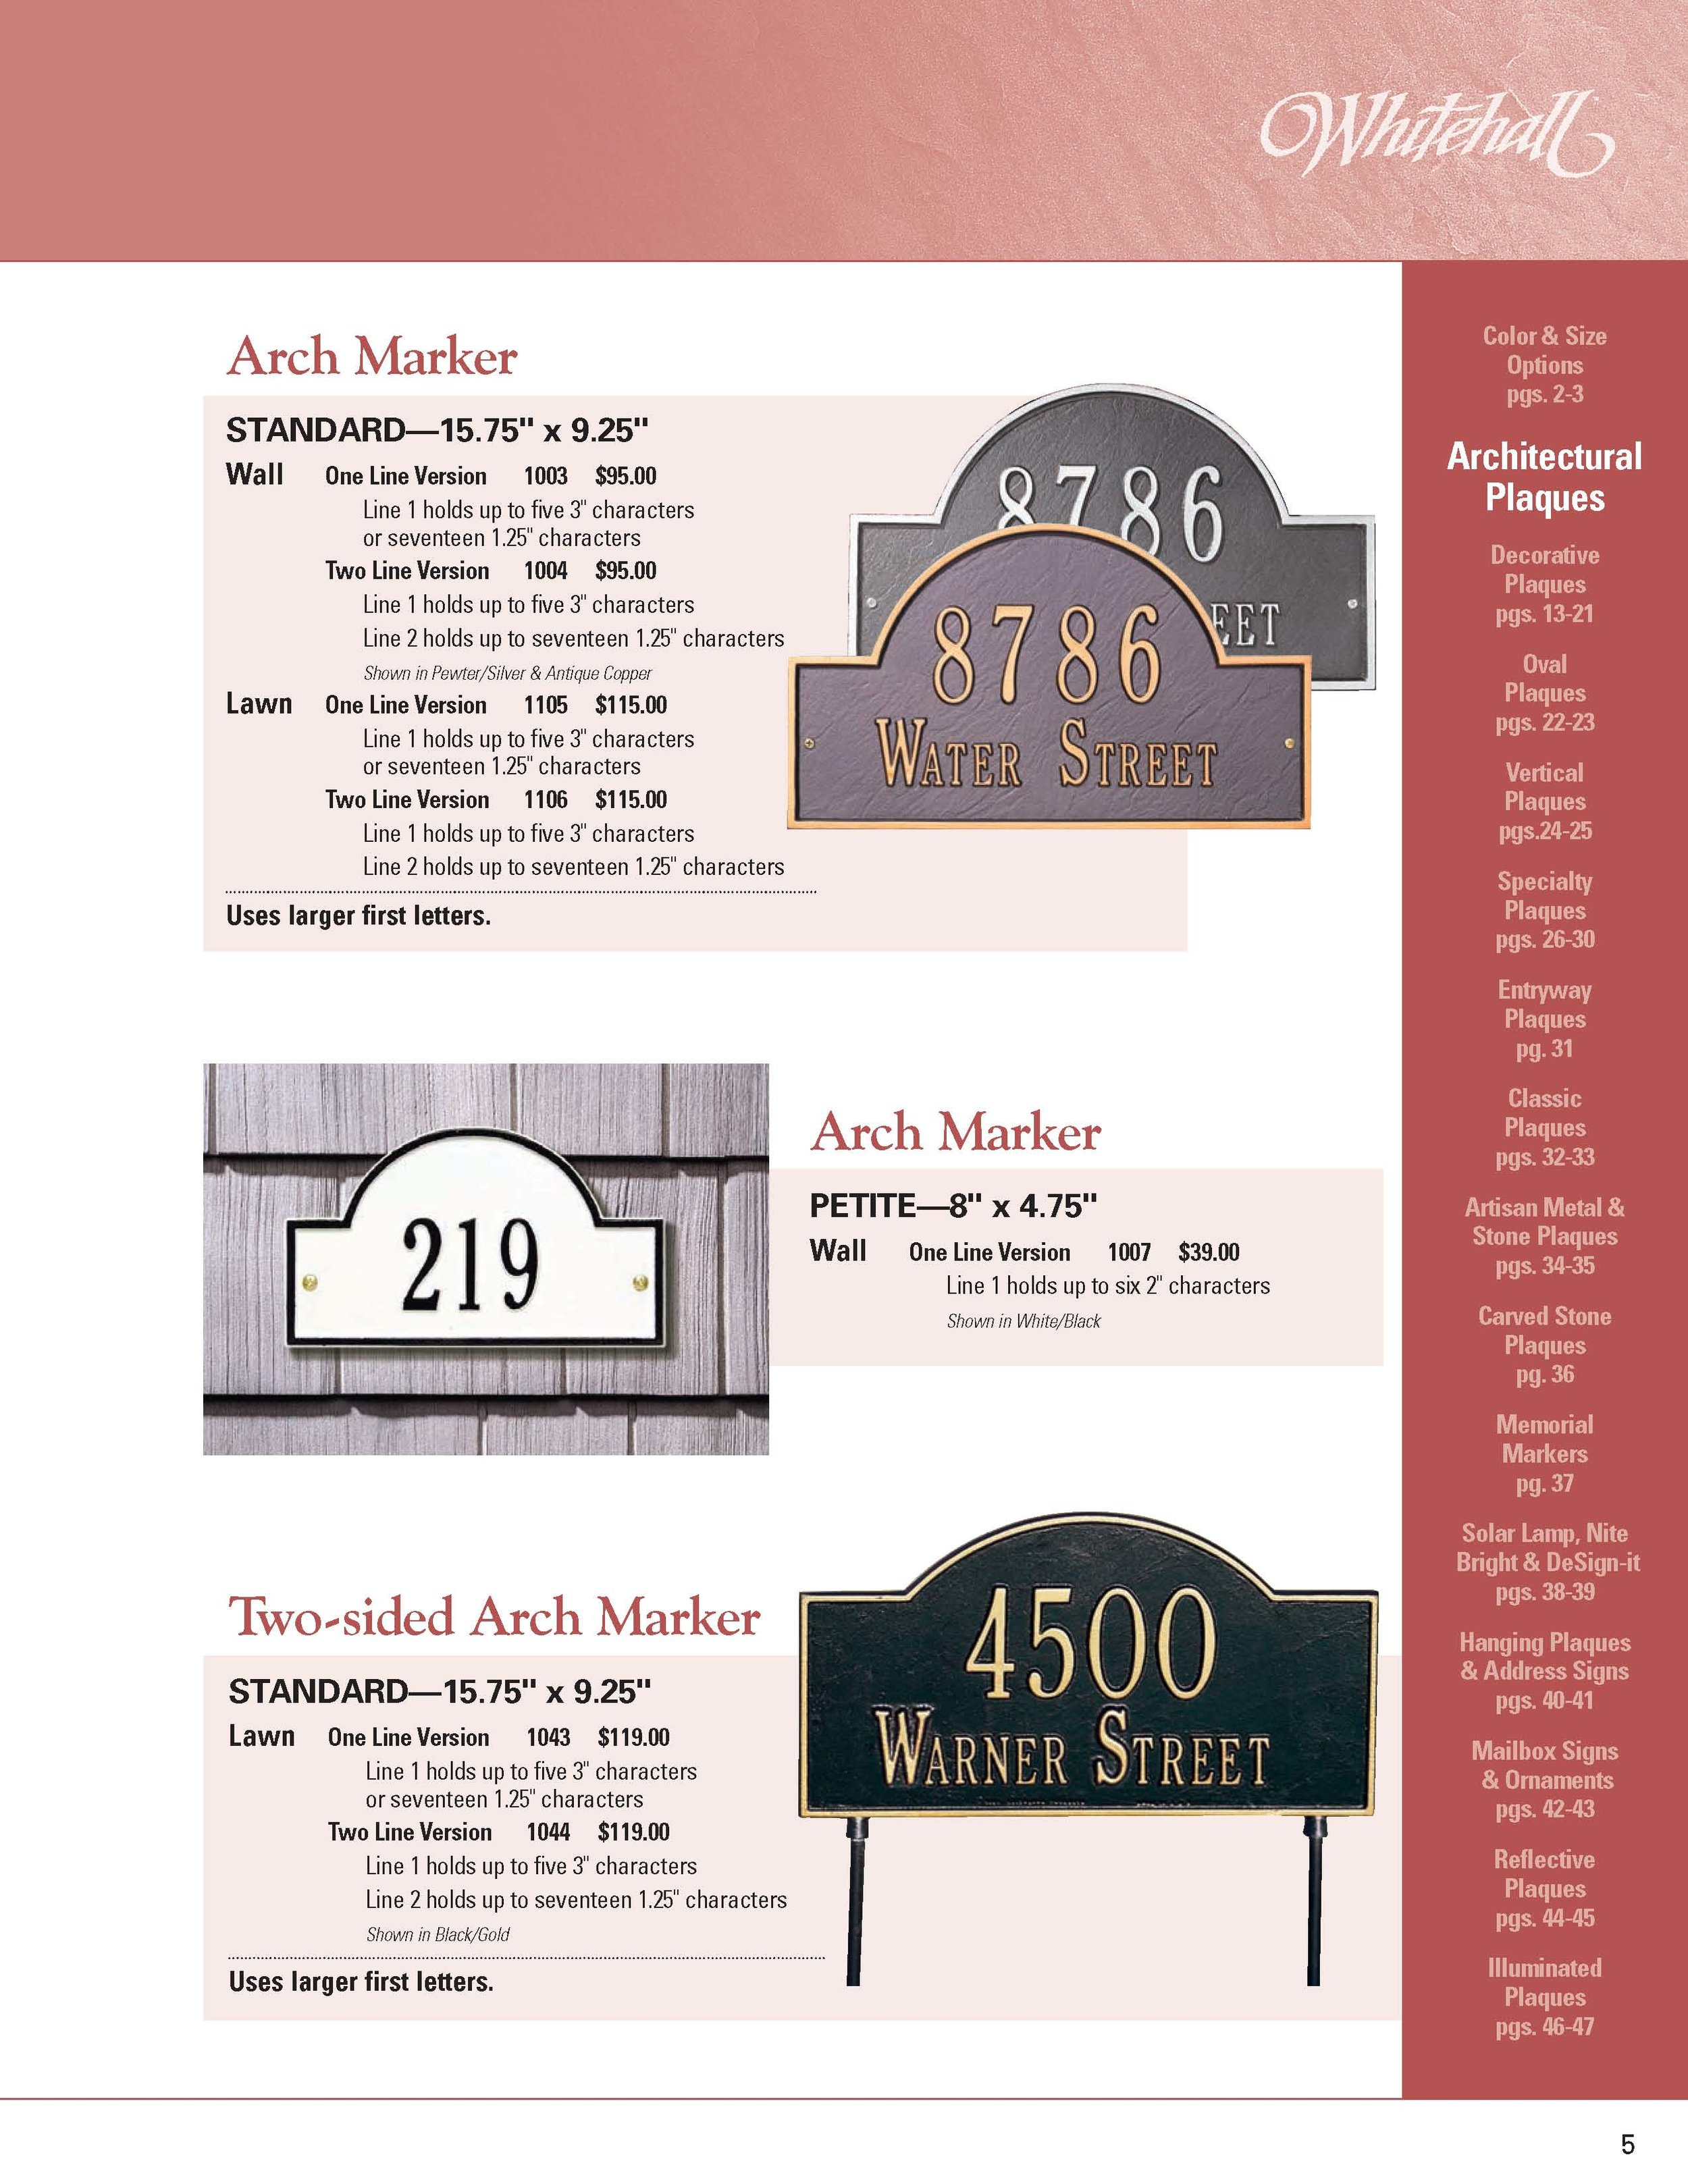 whitehall_catalog_pers_Page_05.jpg